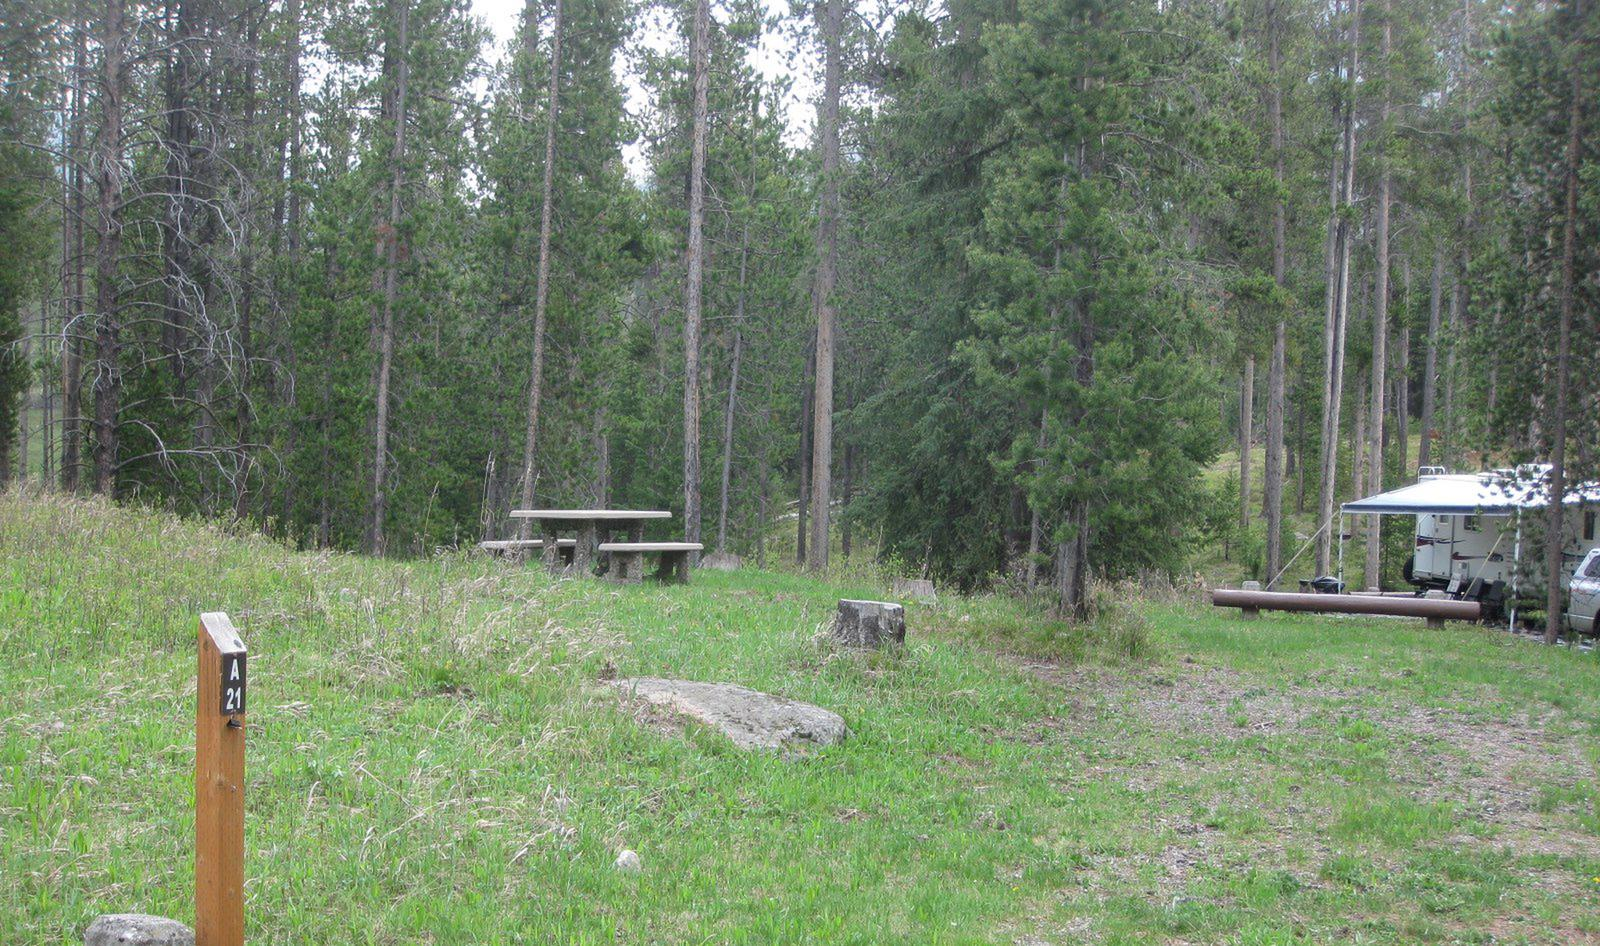 Site A21, campsite surrounded by pine trees, picnic table & fire ringSite A21